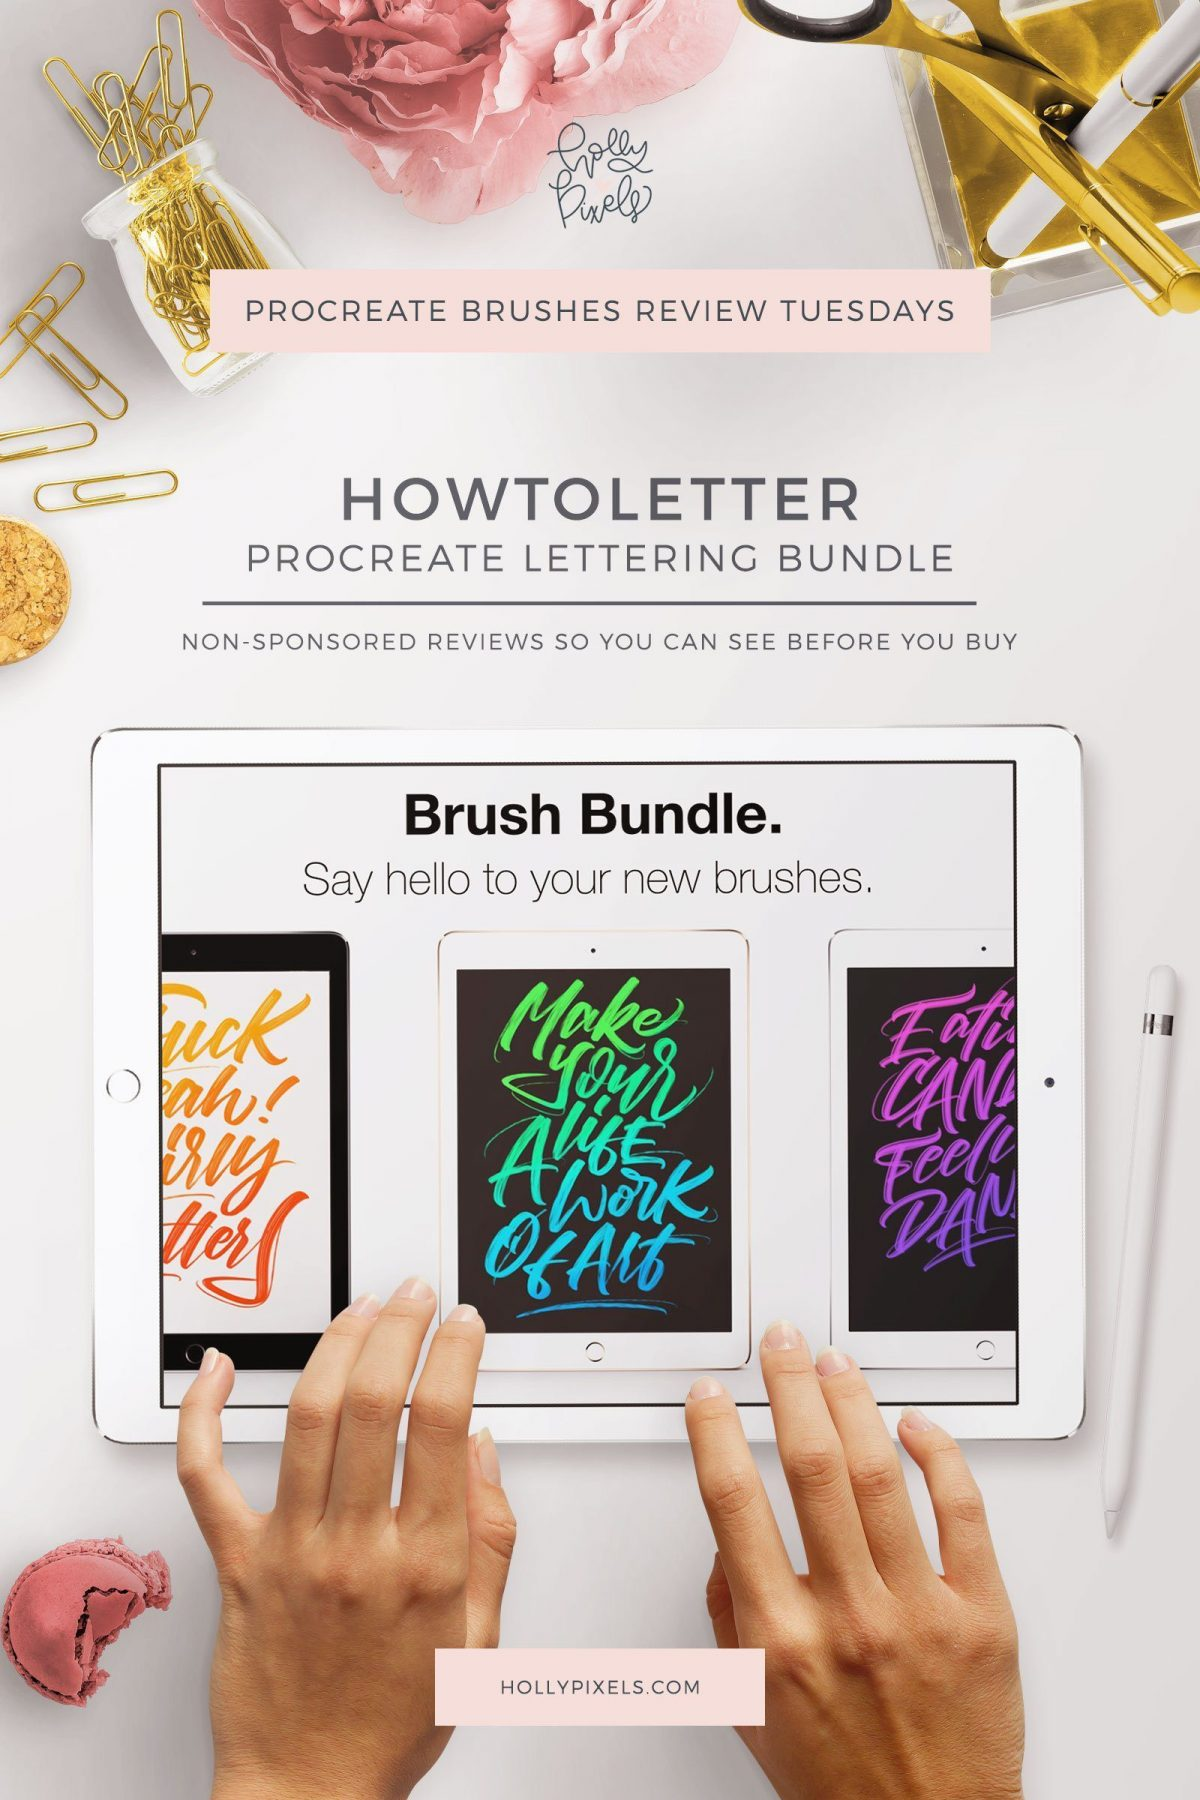 Procreate Brushes By HowtoLetter | Procreate Brush Review Tuesdays